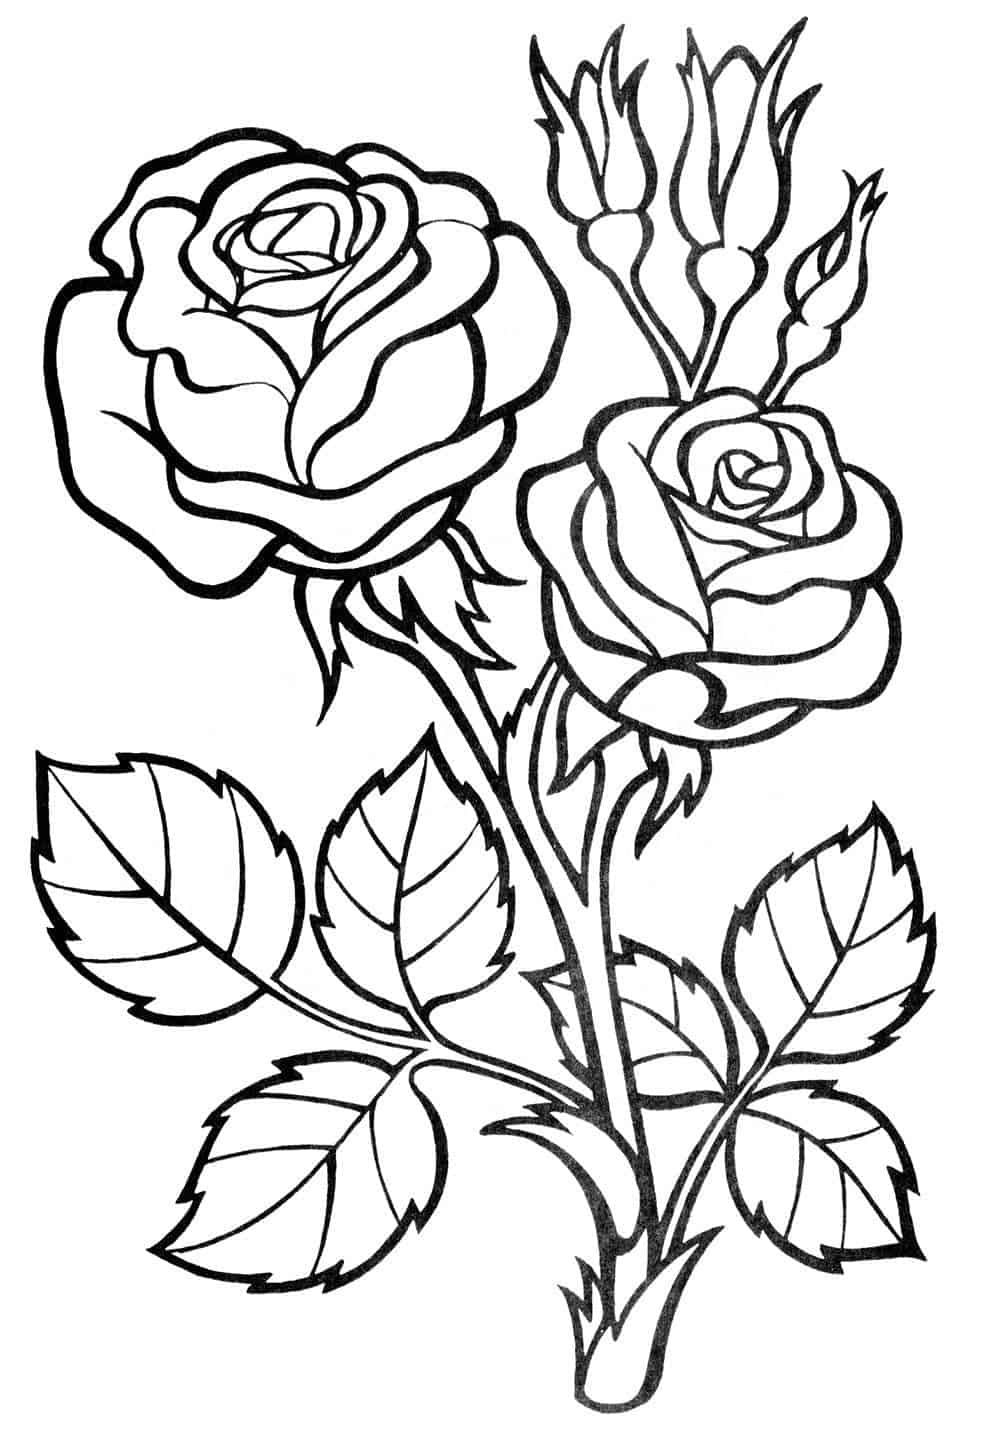 simple rose coloring pages rose coloring pages easy in 2020 rose stencil flower coloring simple pages rose